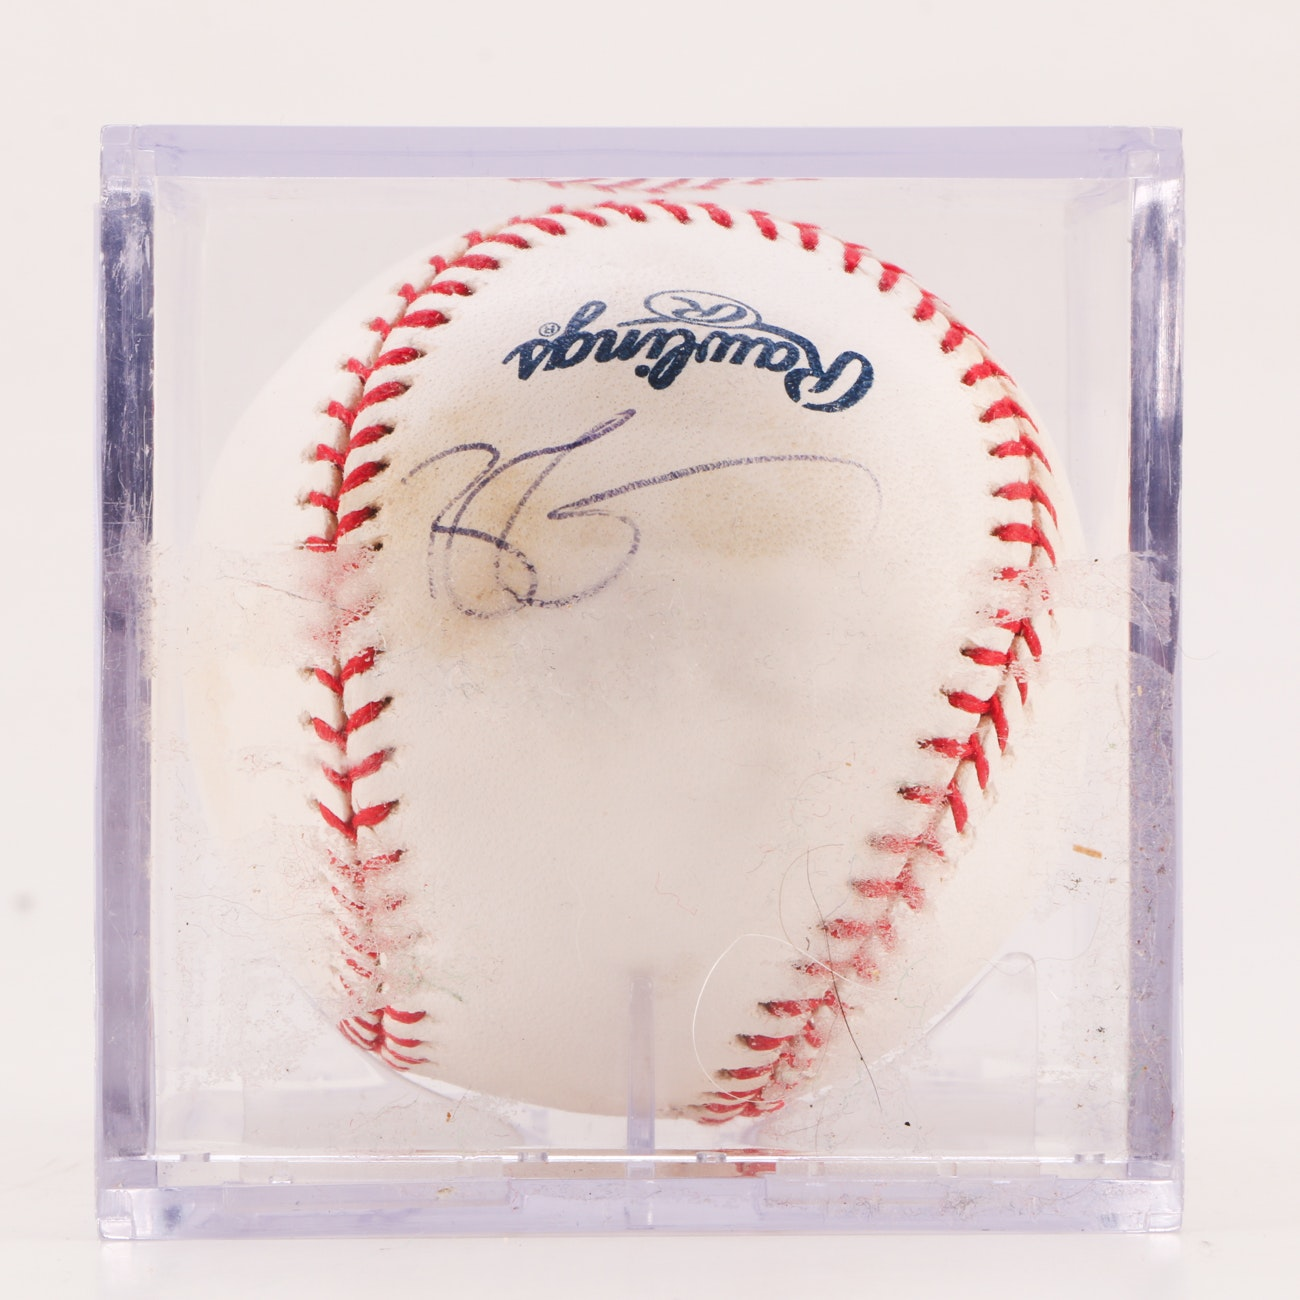 Ryan Zimmerman Washington Nationals Signed Rawlings MLB Baseball JSA